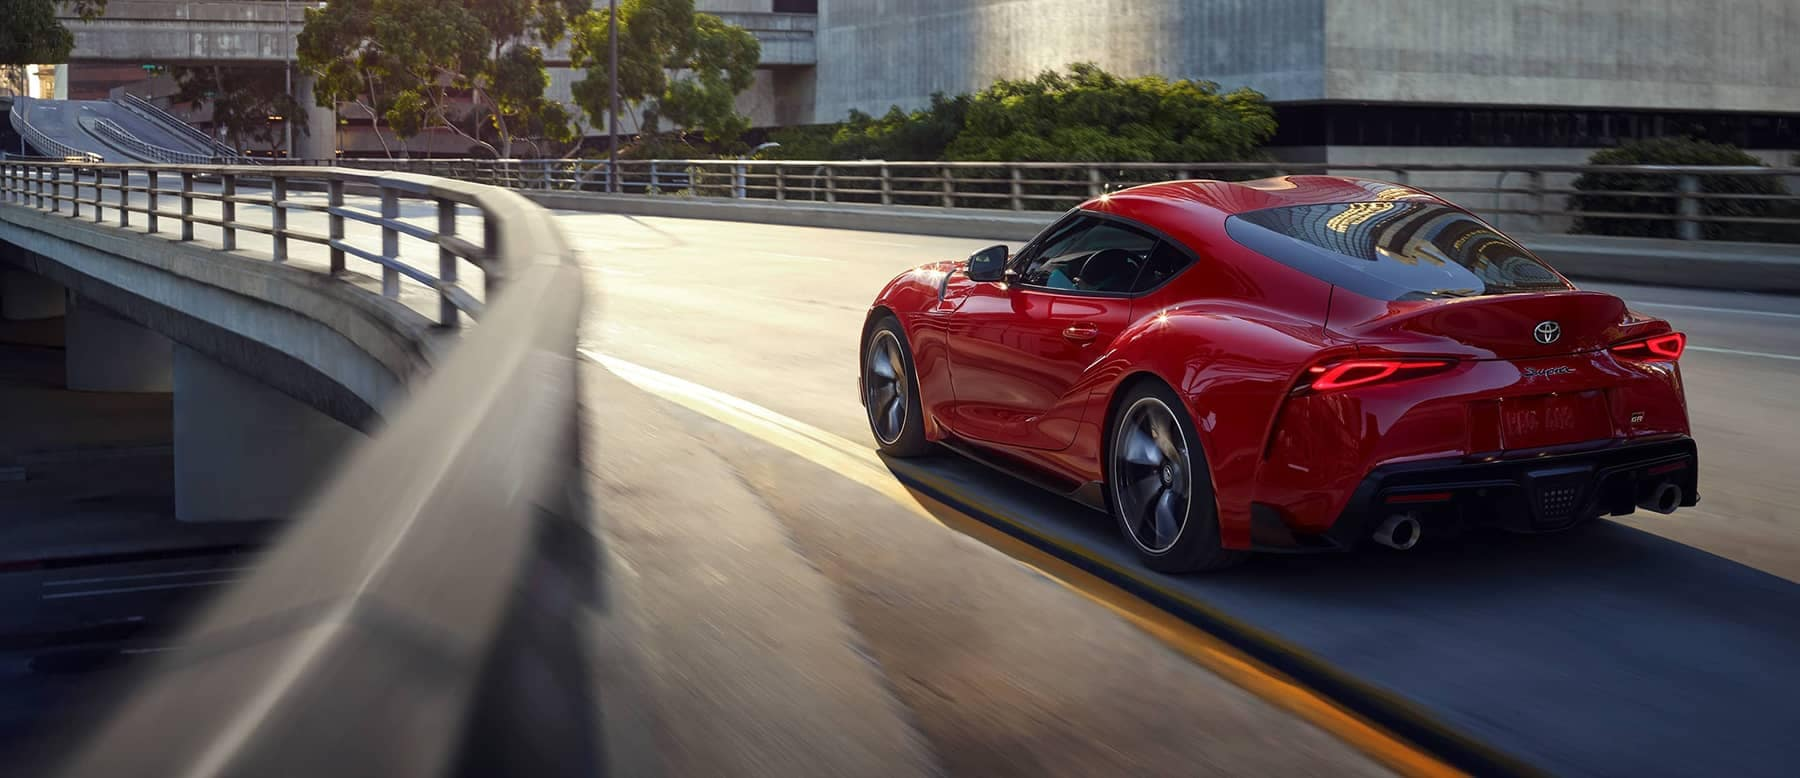 2020 Toyota GR Supra speeding around corner